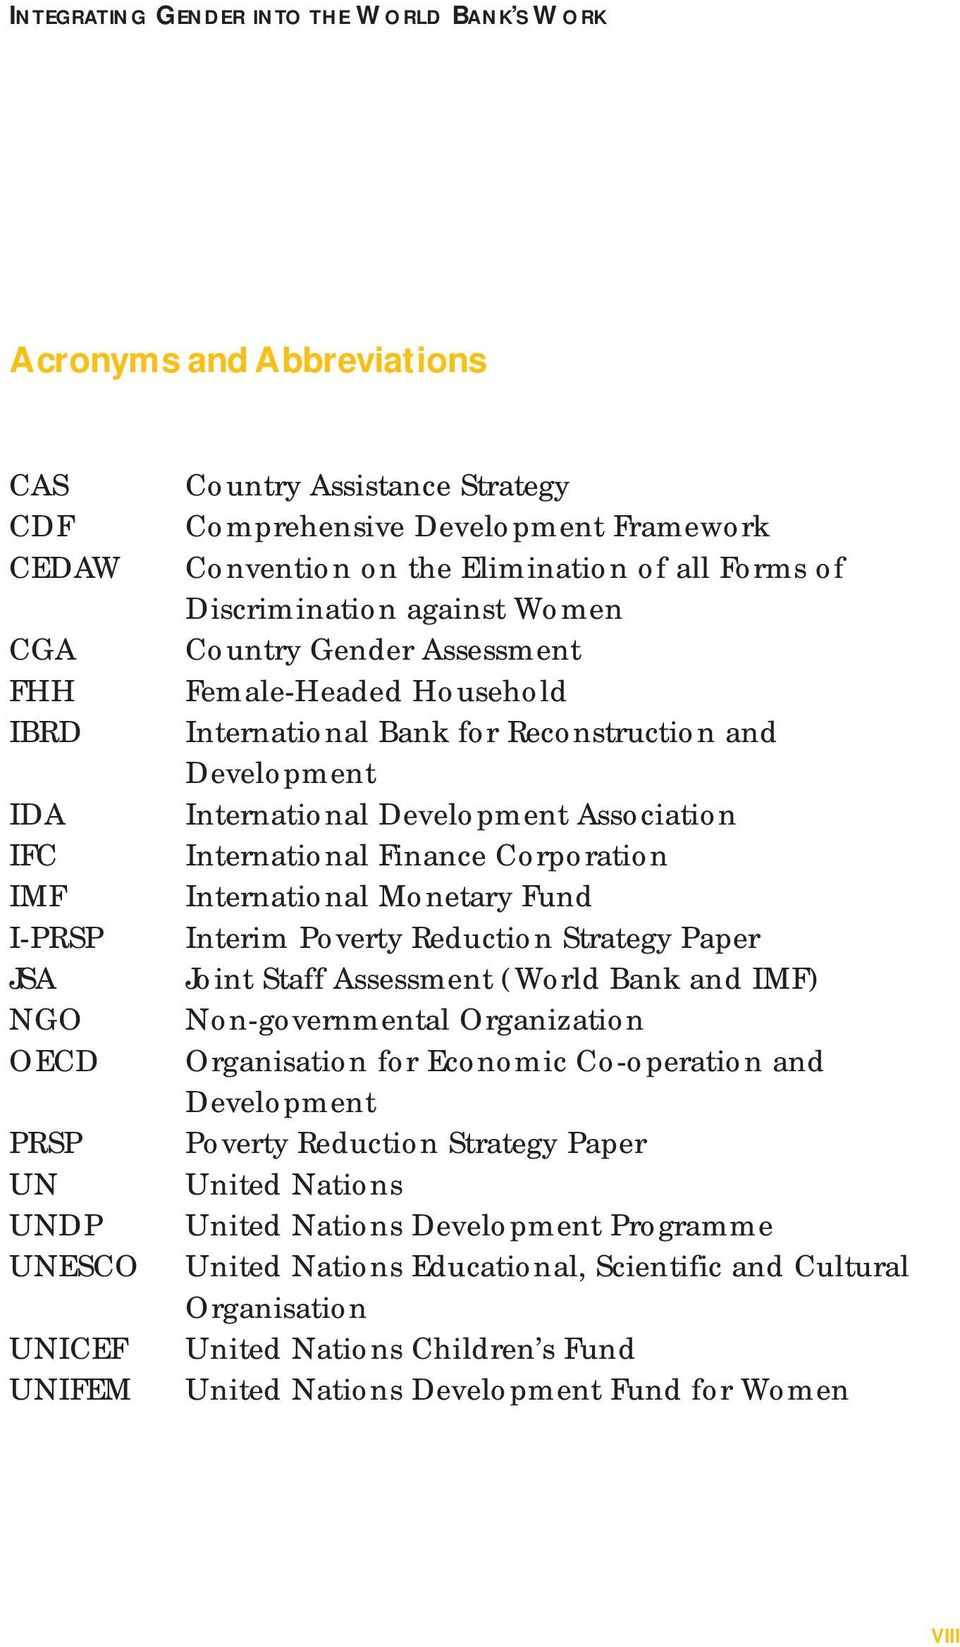 and Development International Development Association International Finance Corporation International Monetary Fund Interim Poverty Reduction Strategy Paper Joint Staff Assessment (World Bank and